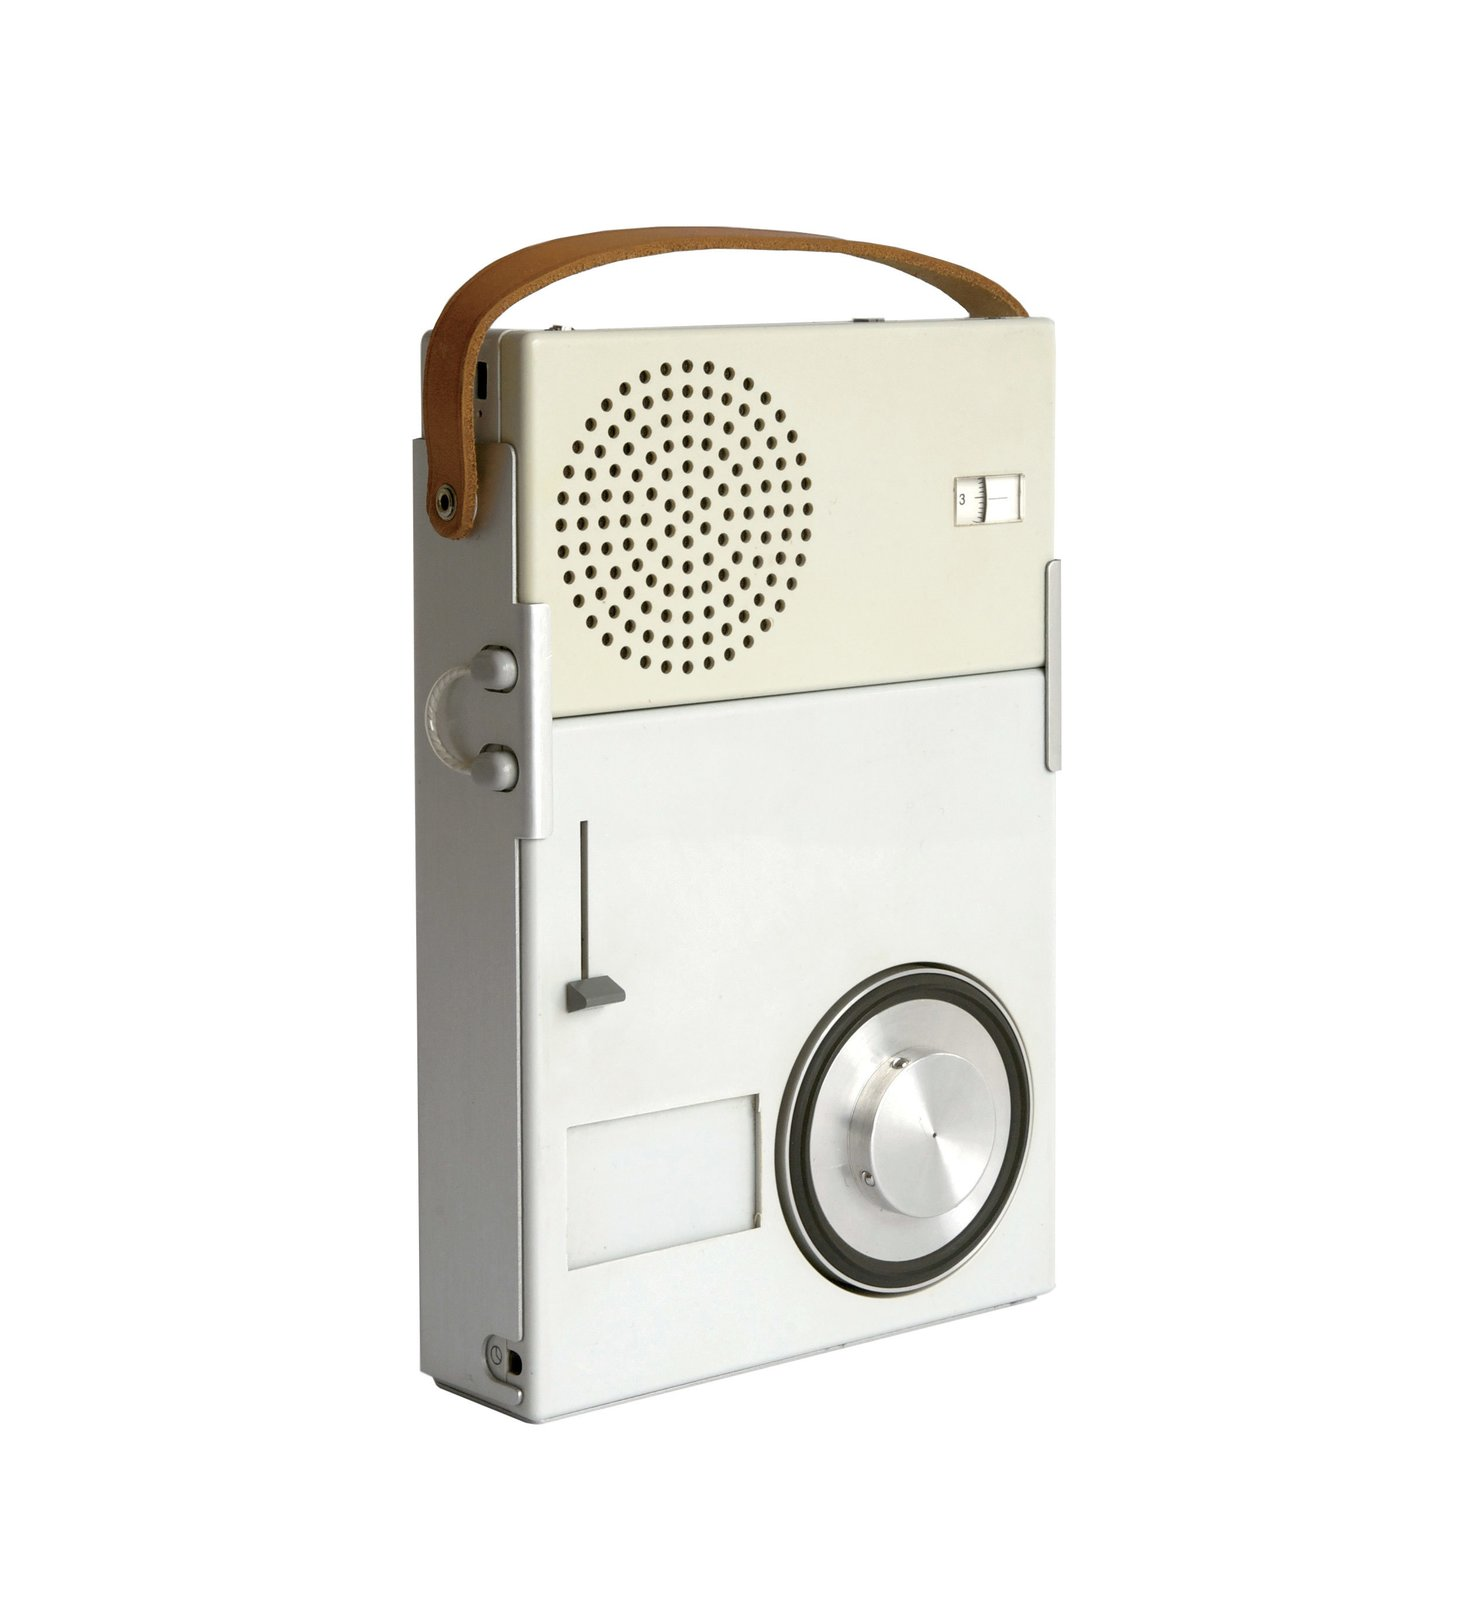 Portable Transistor Radio and Phonograph by Dieter Rams for Braun  With a compact, rectilinear body, Rams's 1959 Functionalist design heralded the now-ubiquitous notion of personal music on-the-go.  Sound Style by Stephen Blake from Designing for the Five Senses: Toolkit for Modern Acoustics